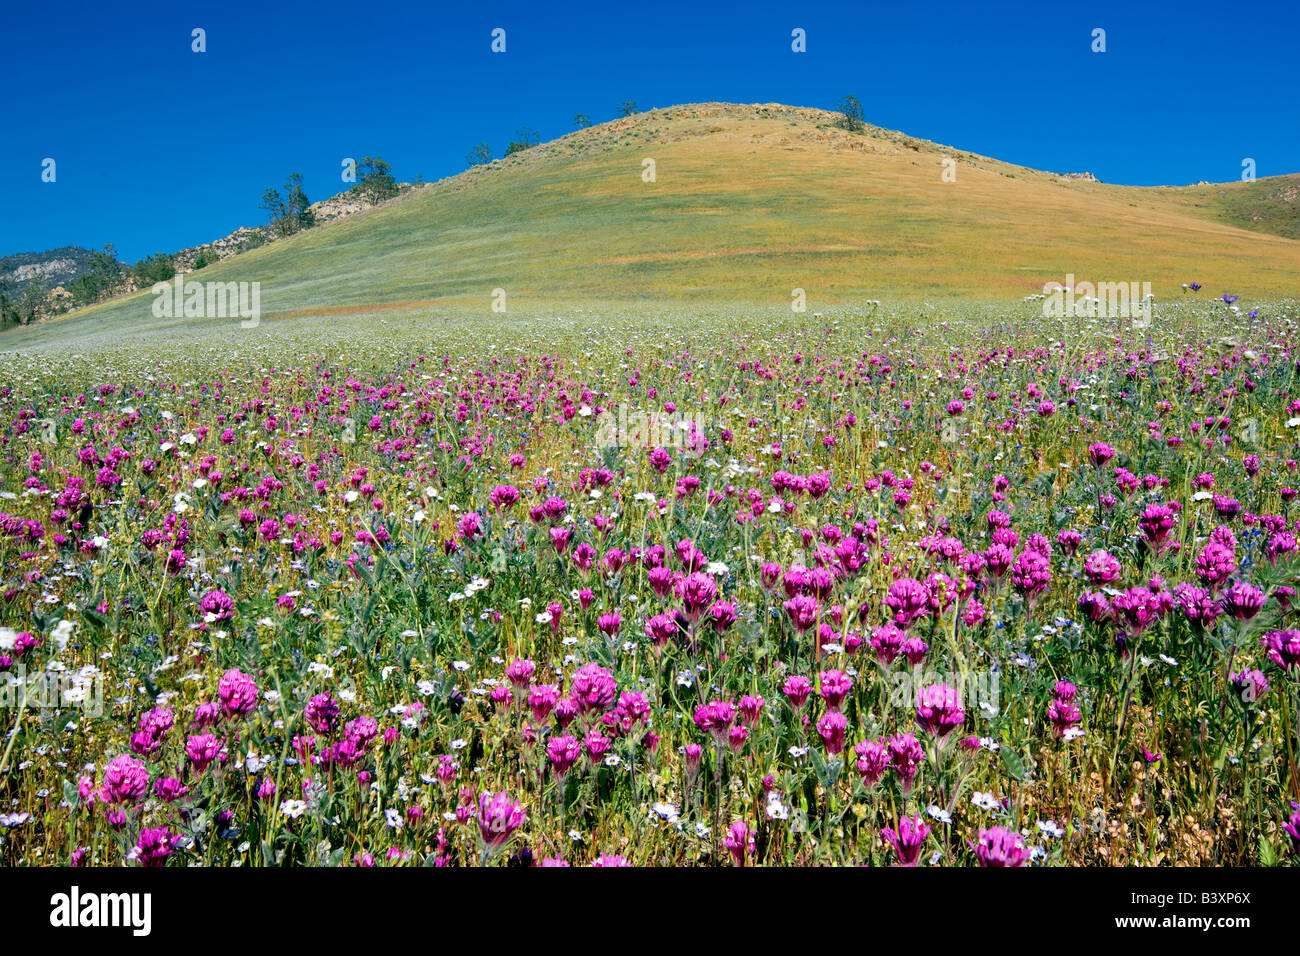 Mostly Purple Owls Clover Castilleja exserta Sequoia National Forest Kern County California - Stock Image